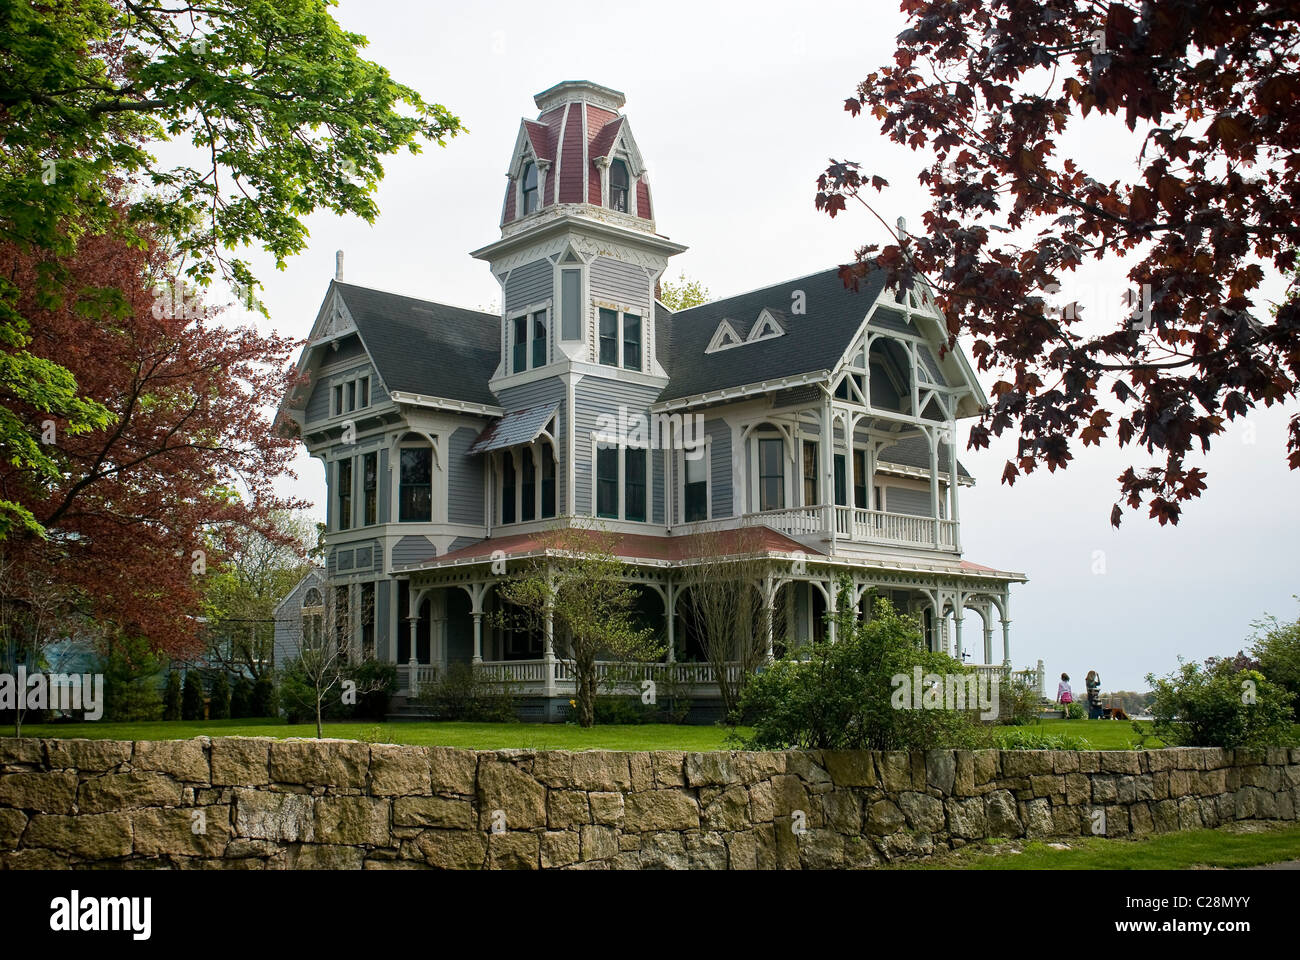 New HavenOld Gothic Victorian House near the 'Thimble Islands',  Connecticut, USA